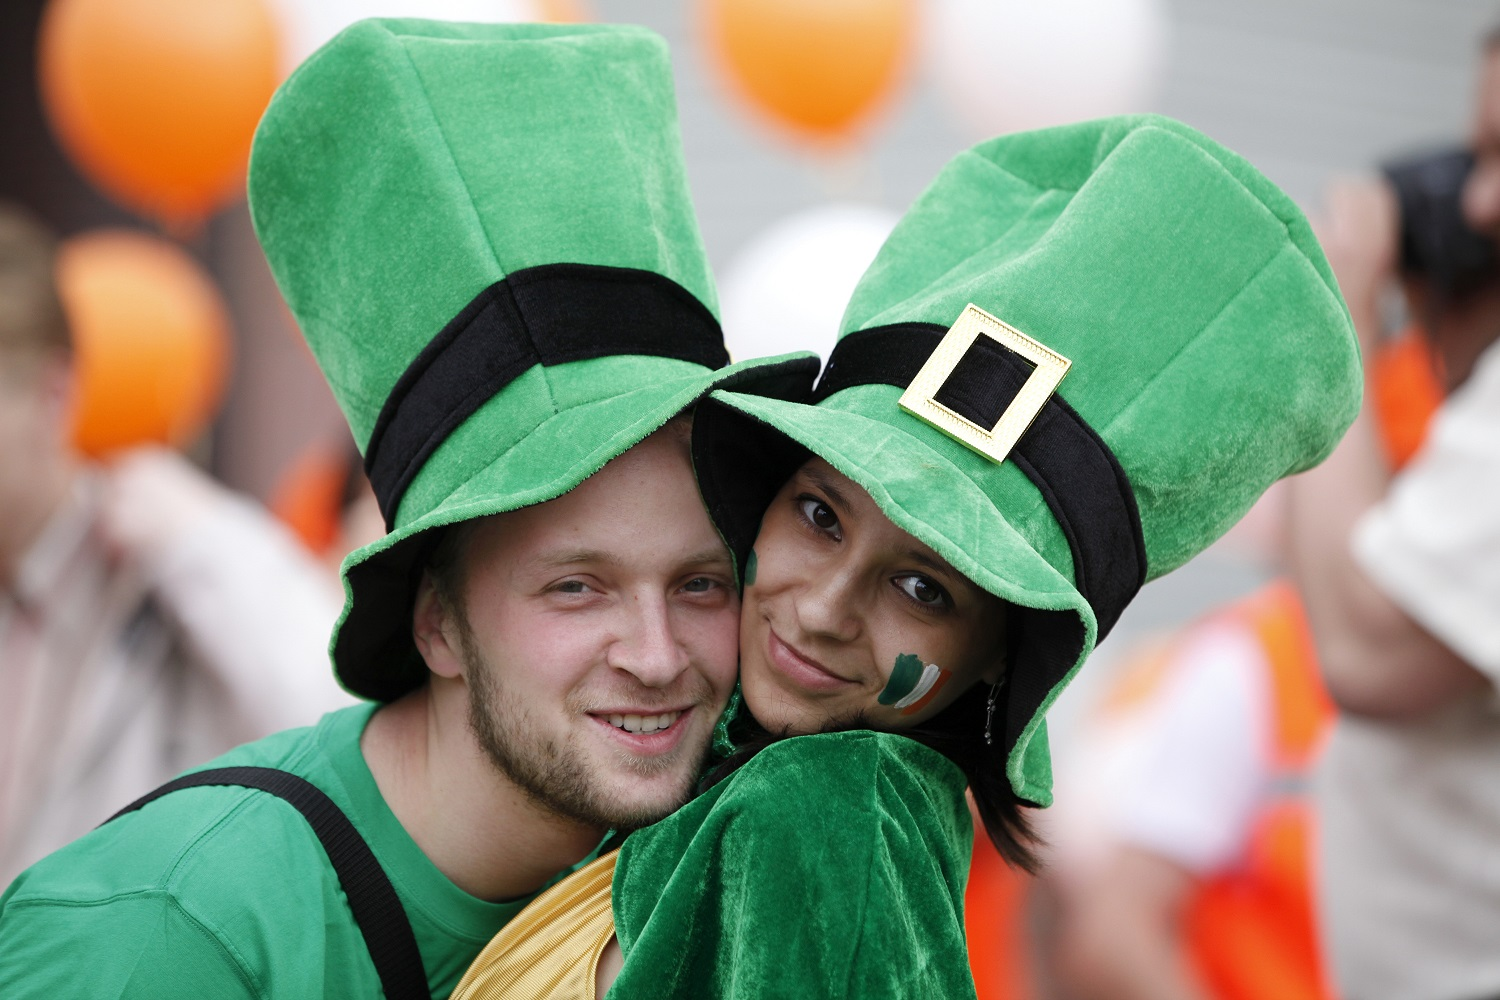 Couple wearing costumes at the Savannah St. Patrick's Day parade